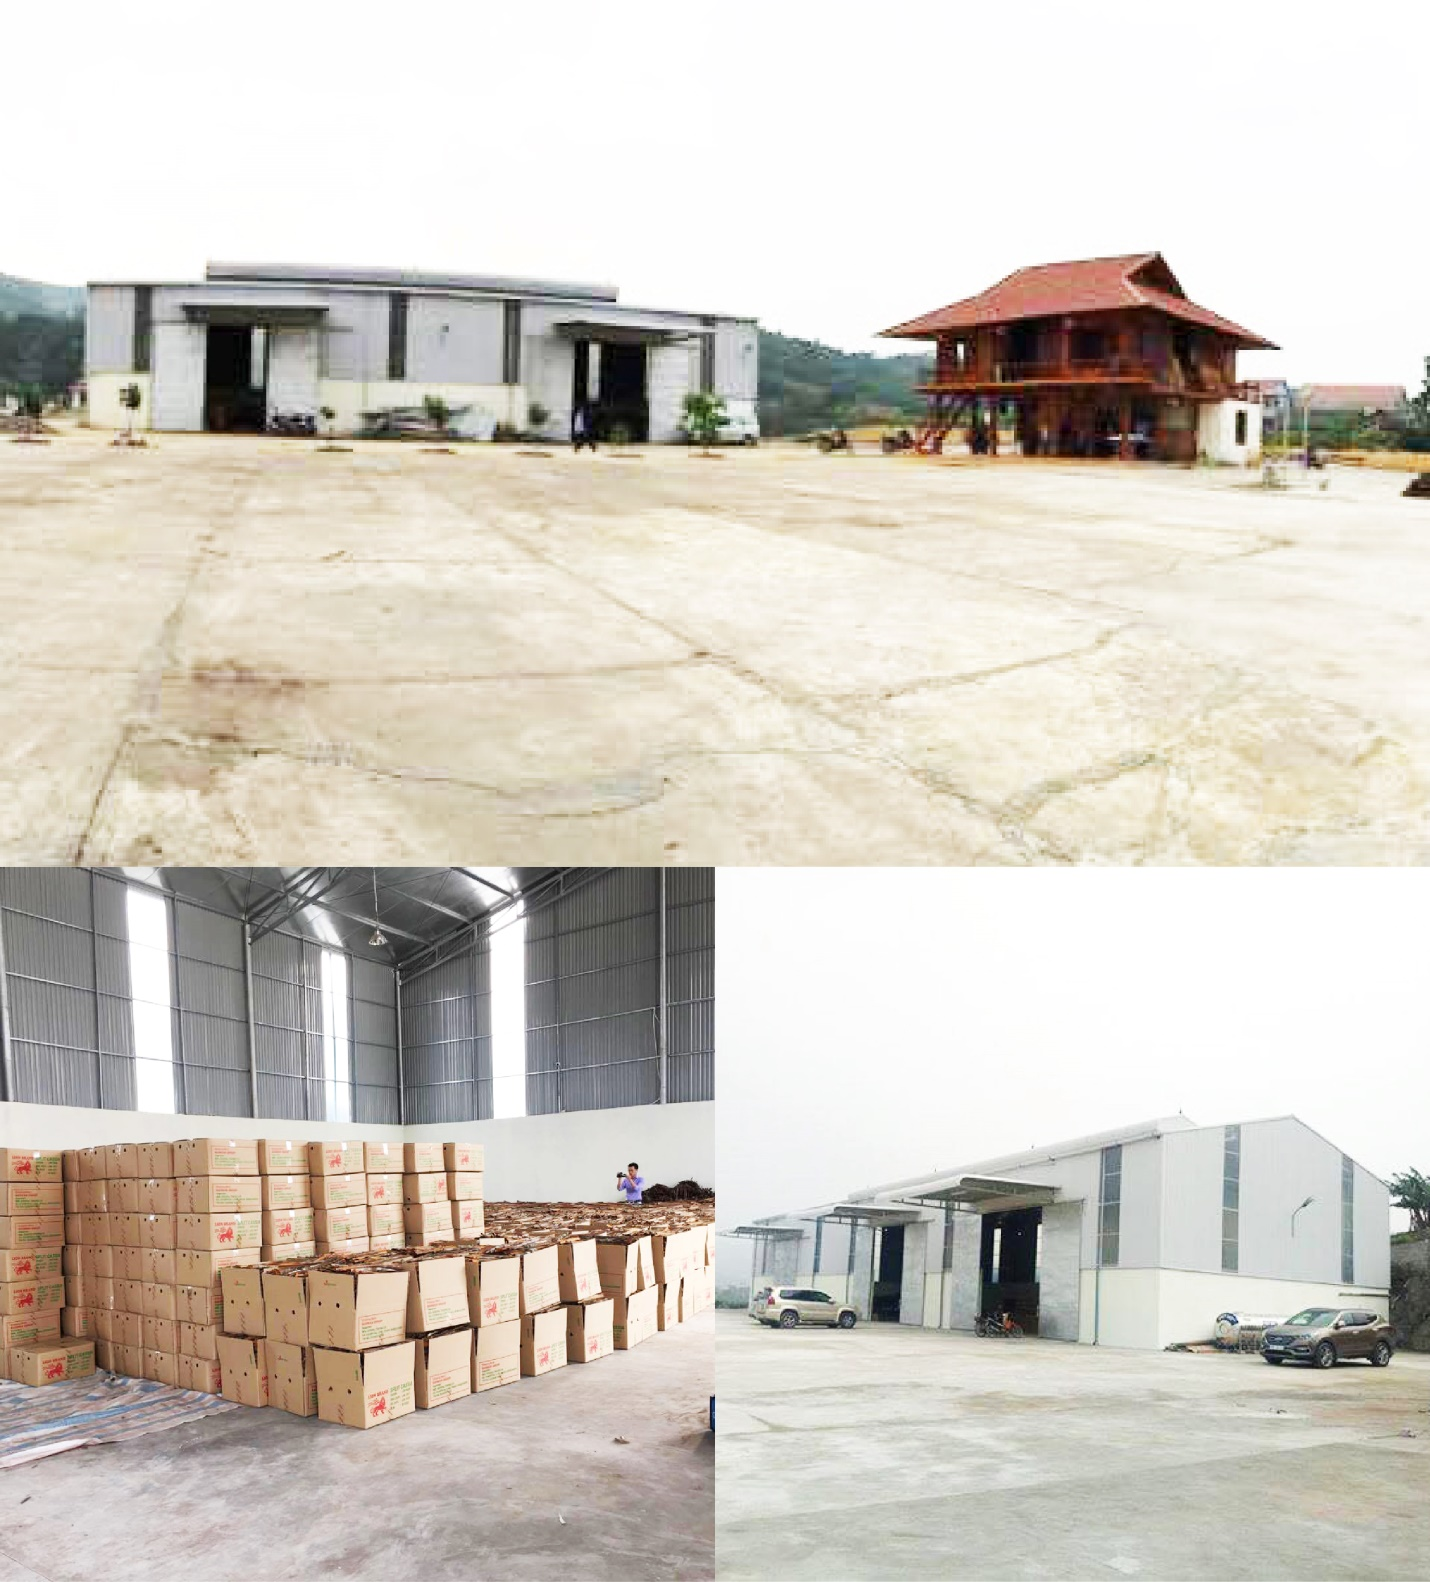 VISIMEX OPENED THE FOURTH FACTORY IN THE BIGGEST GROWING REGION CINNAMON VIETNAM